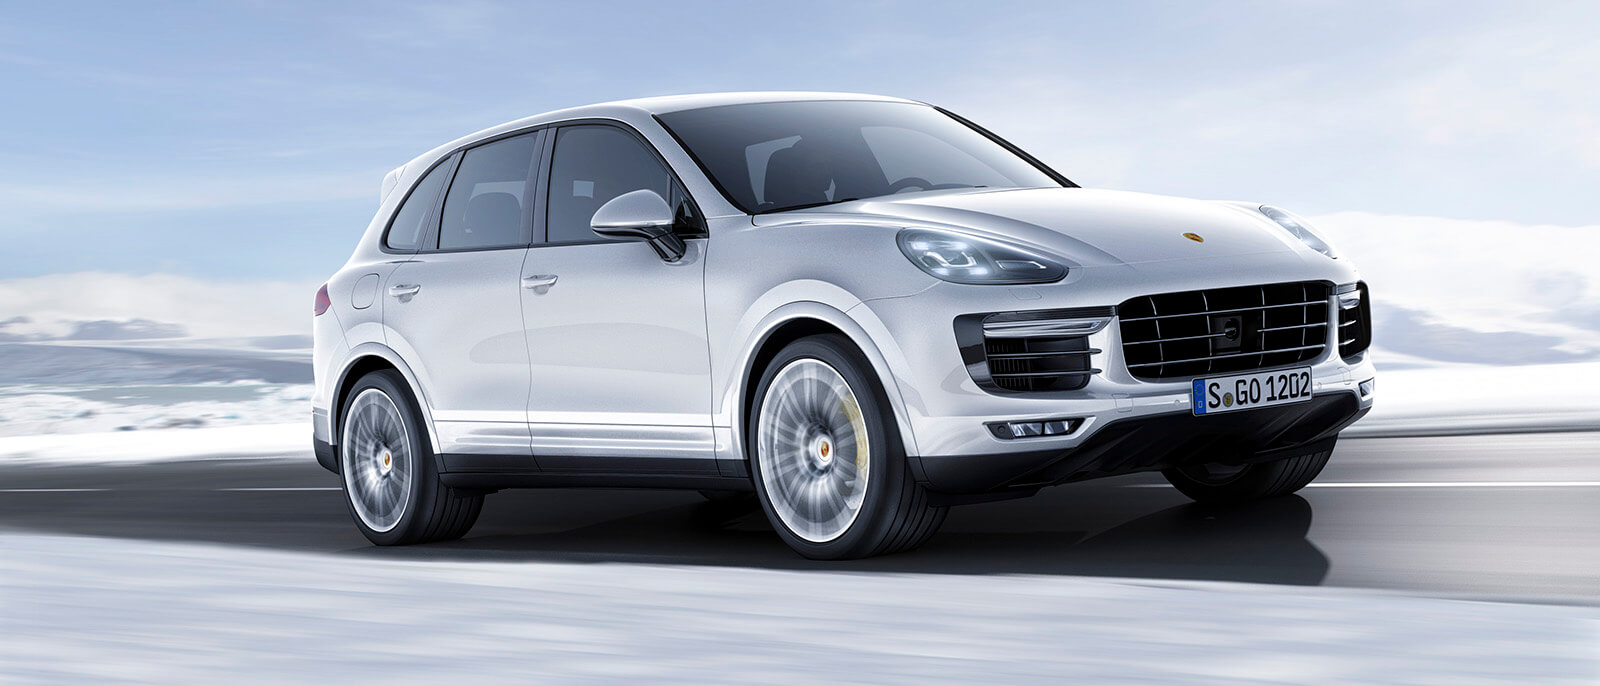 2017 porsche cayenne turbo s snow